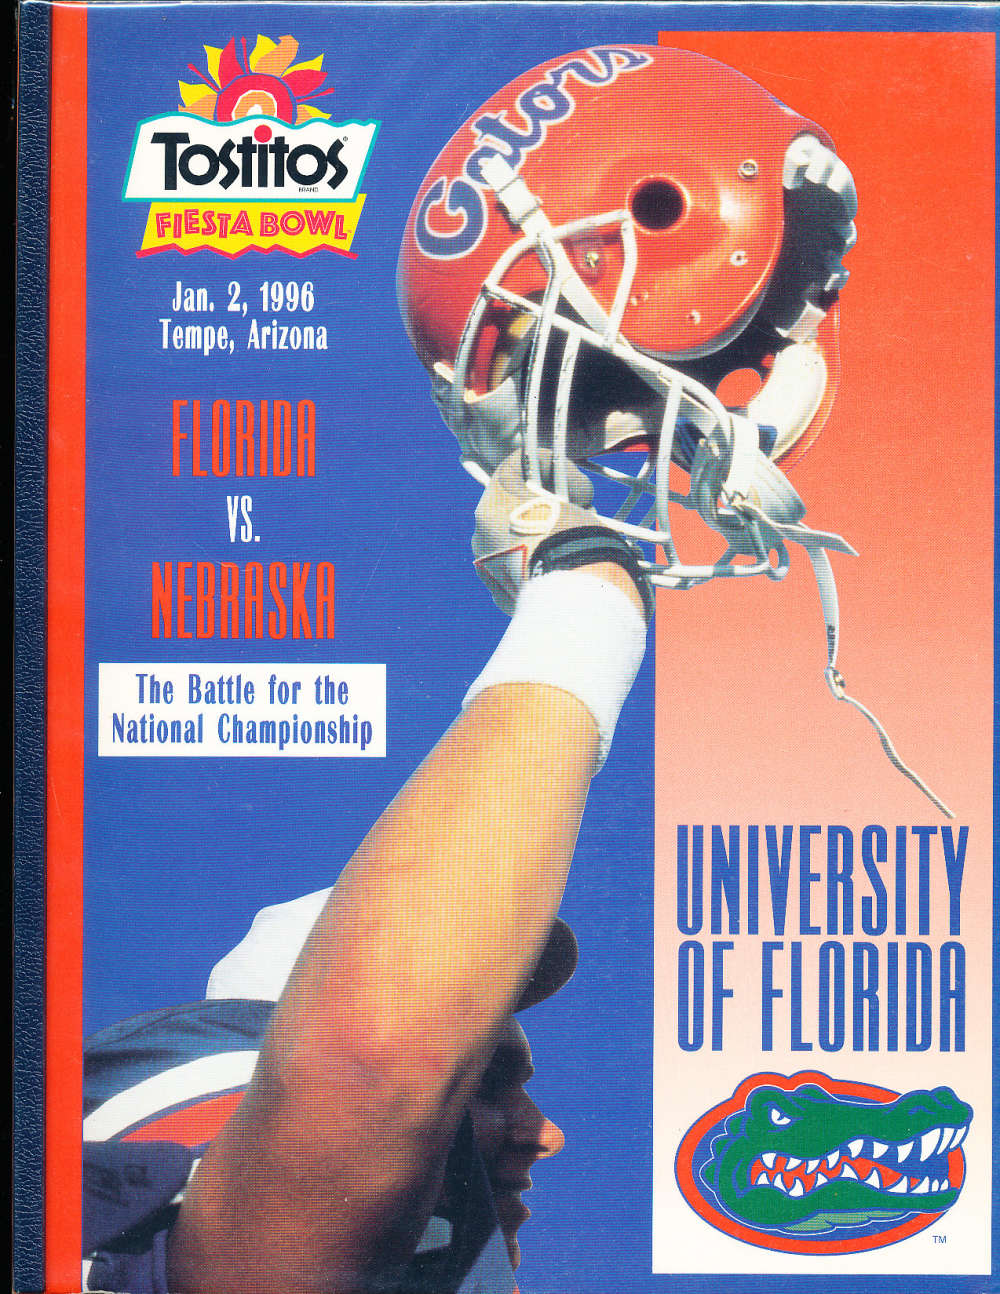 1/2 1996 University of Florida Football fiesta bowl Championship media guide cfbmg49